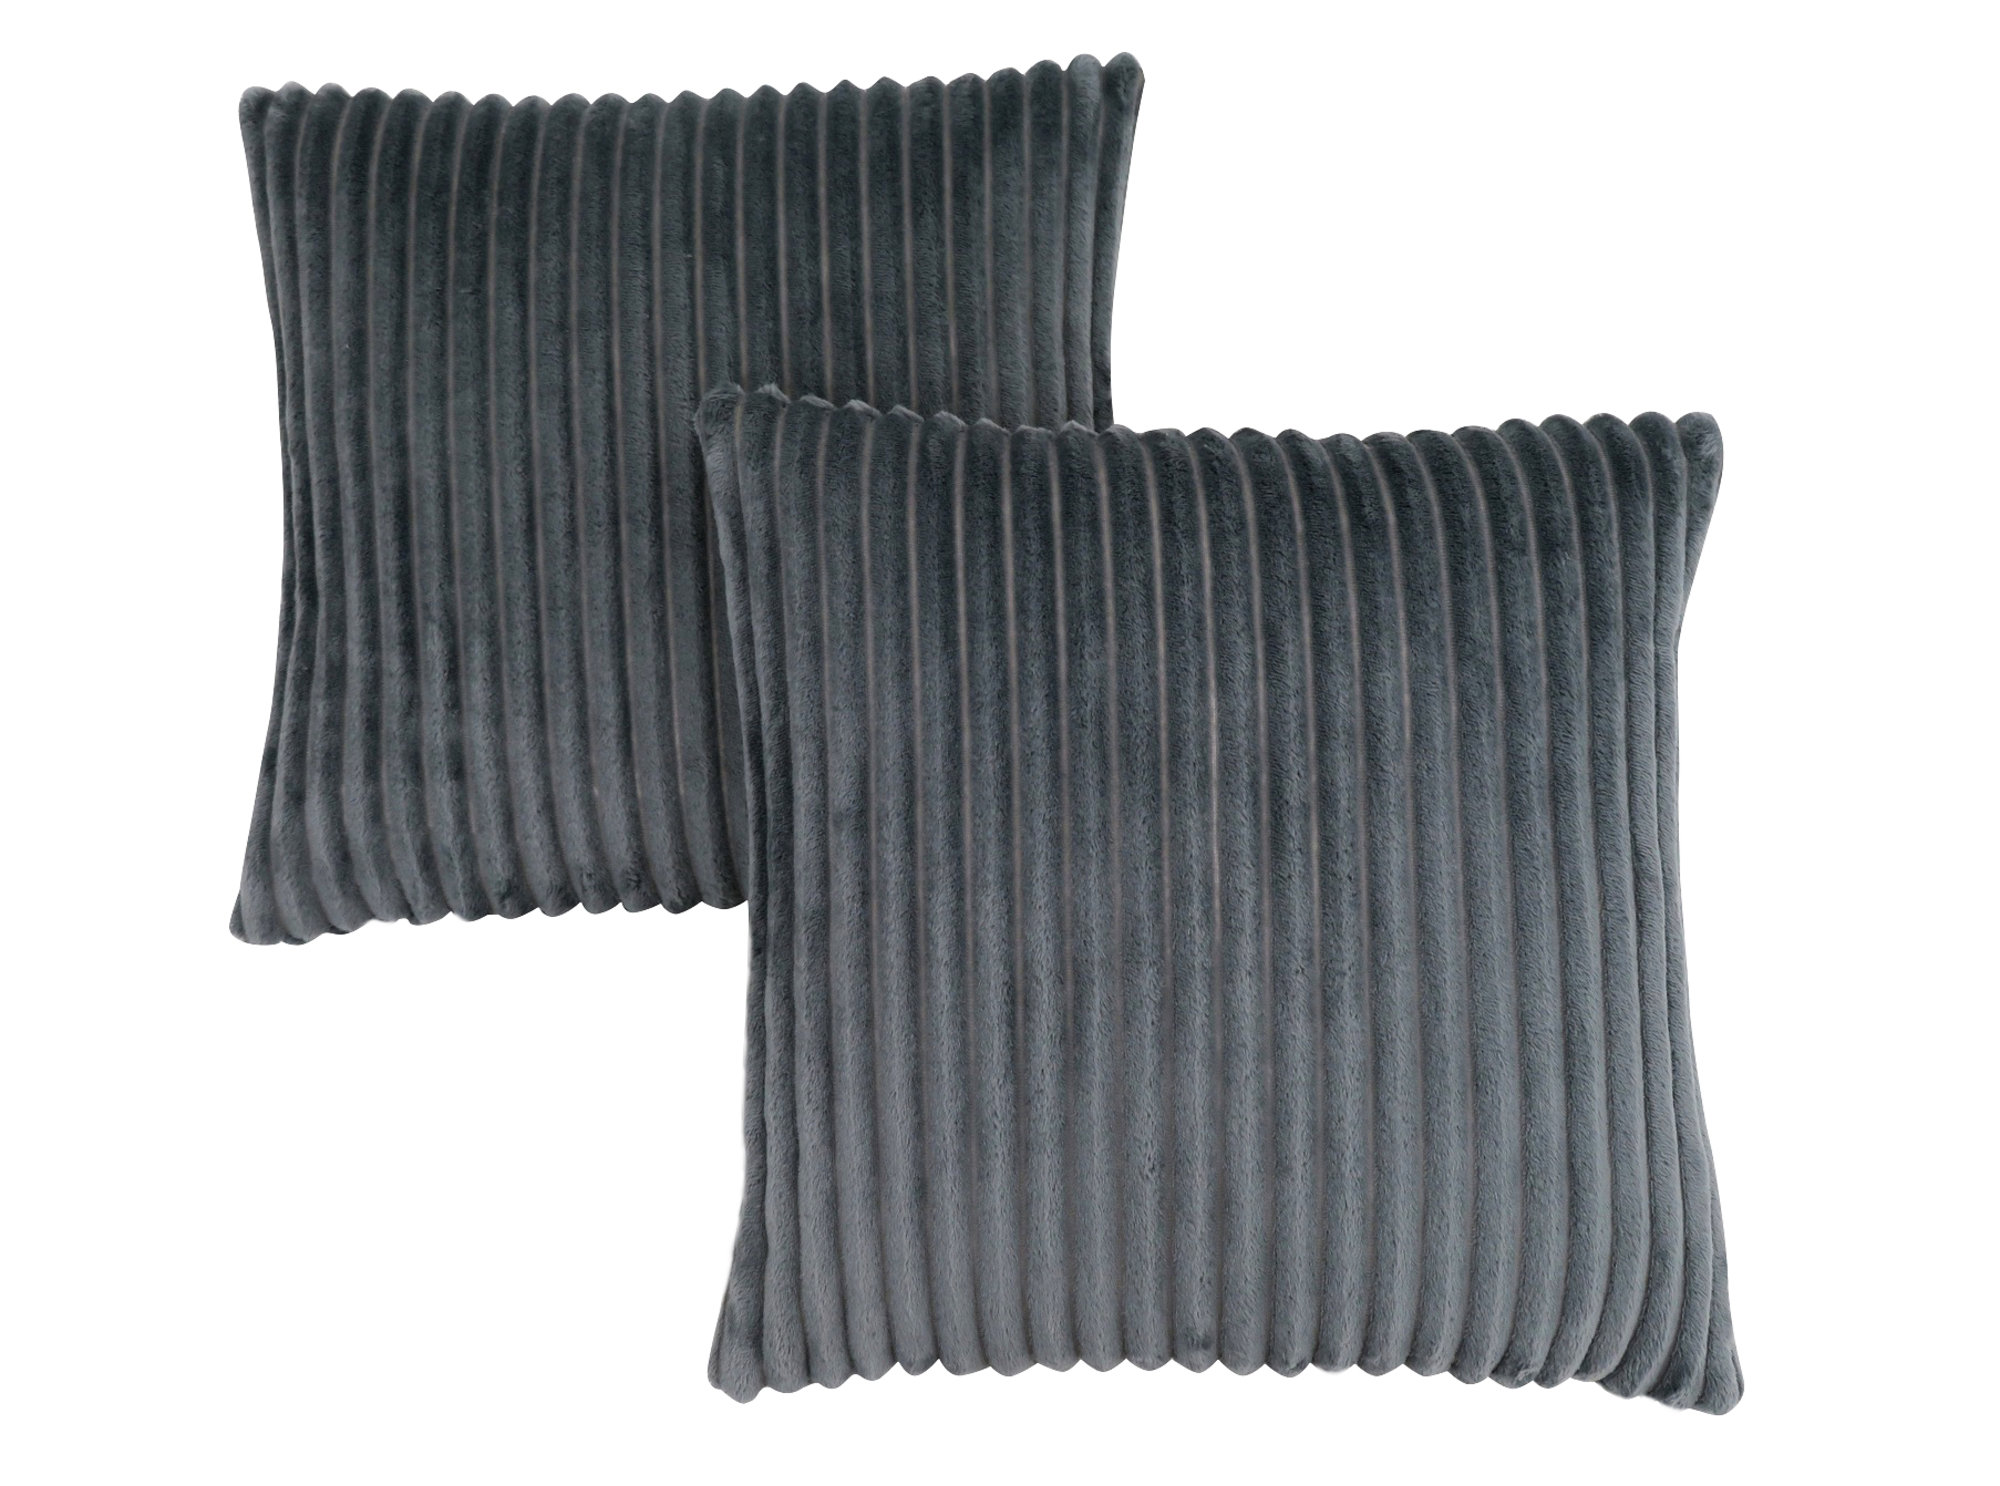 "PILLOW - 18""X 18"" / GREY TEXTURED RIB / 2PCS"